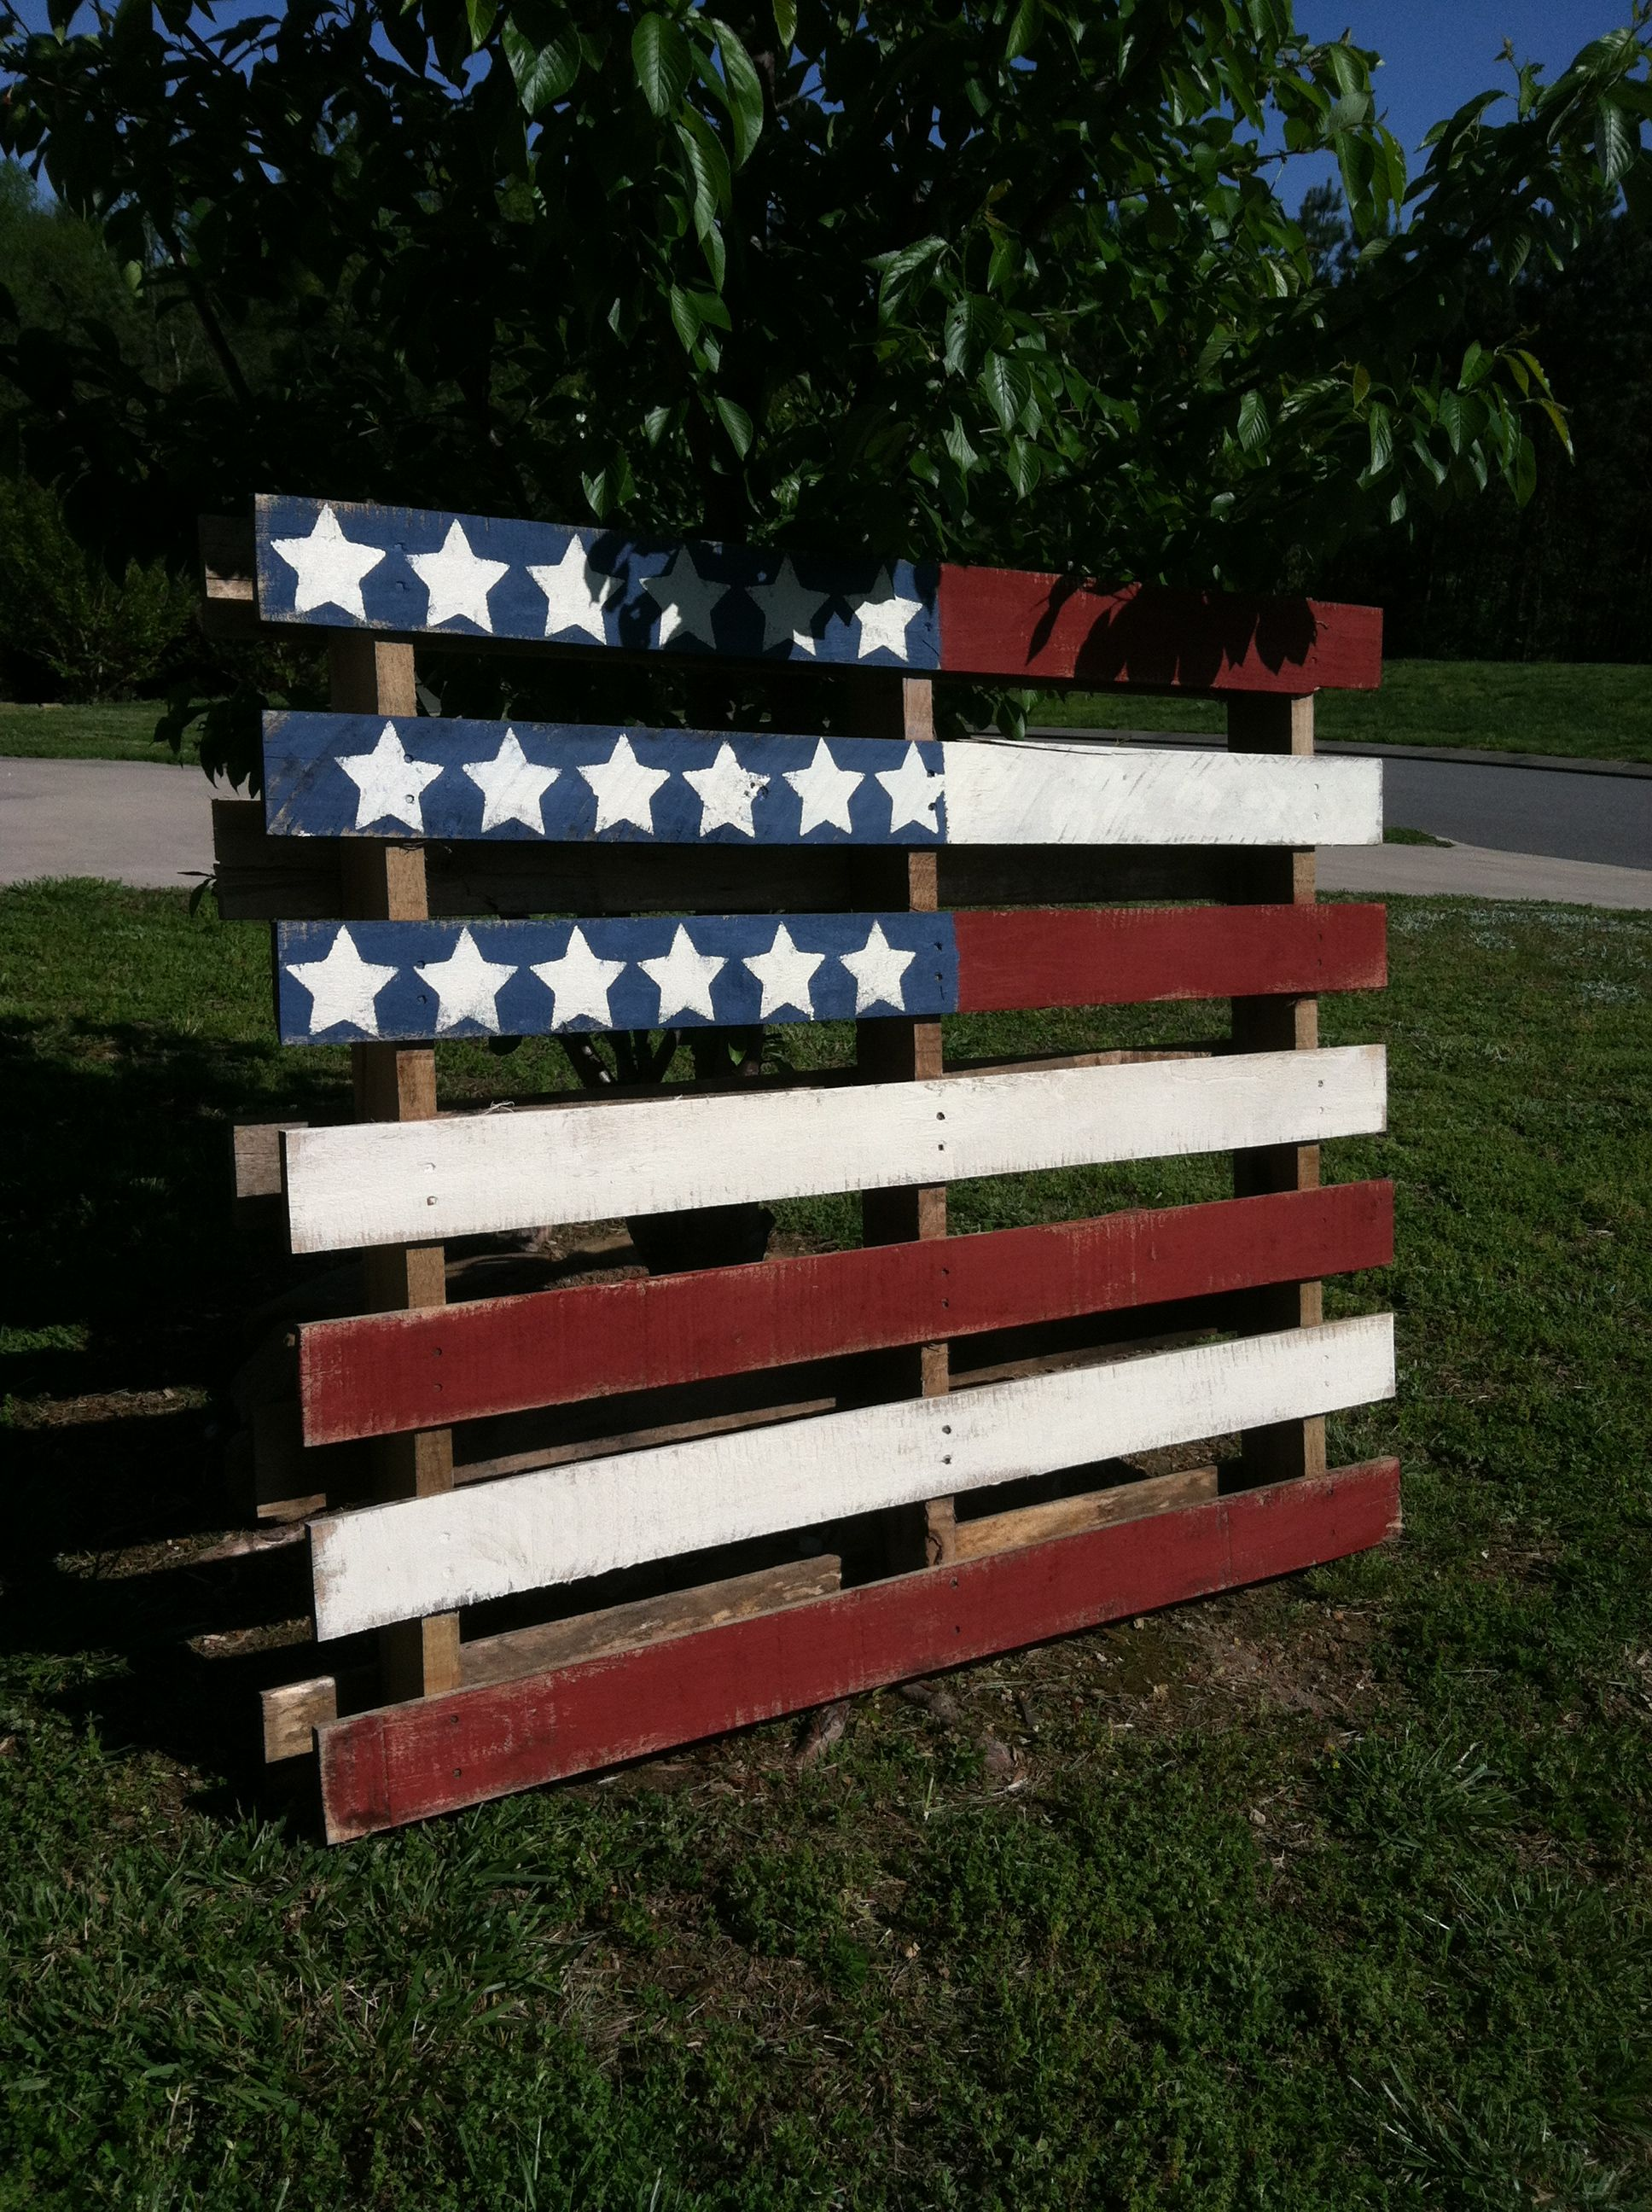 Muebles Bandera American Flag Pallet Love This For An Idea For Church